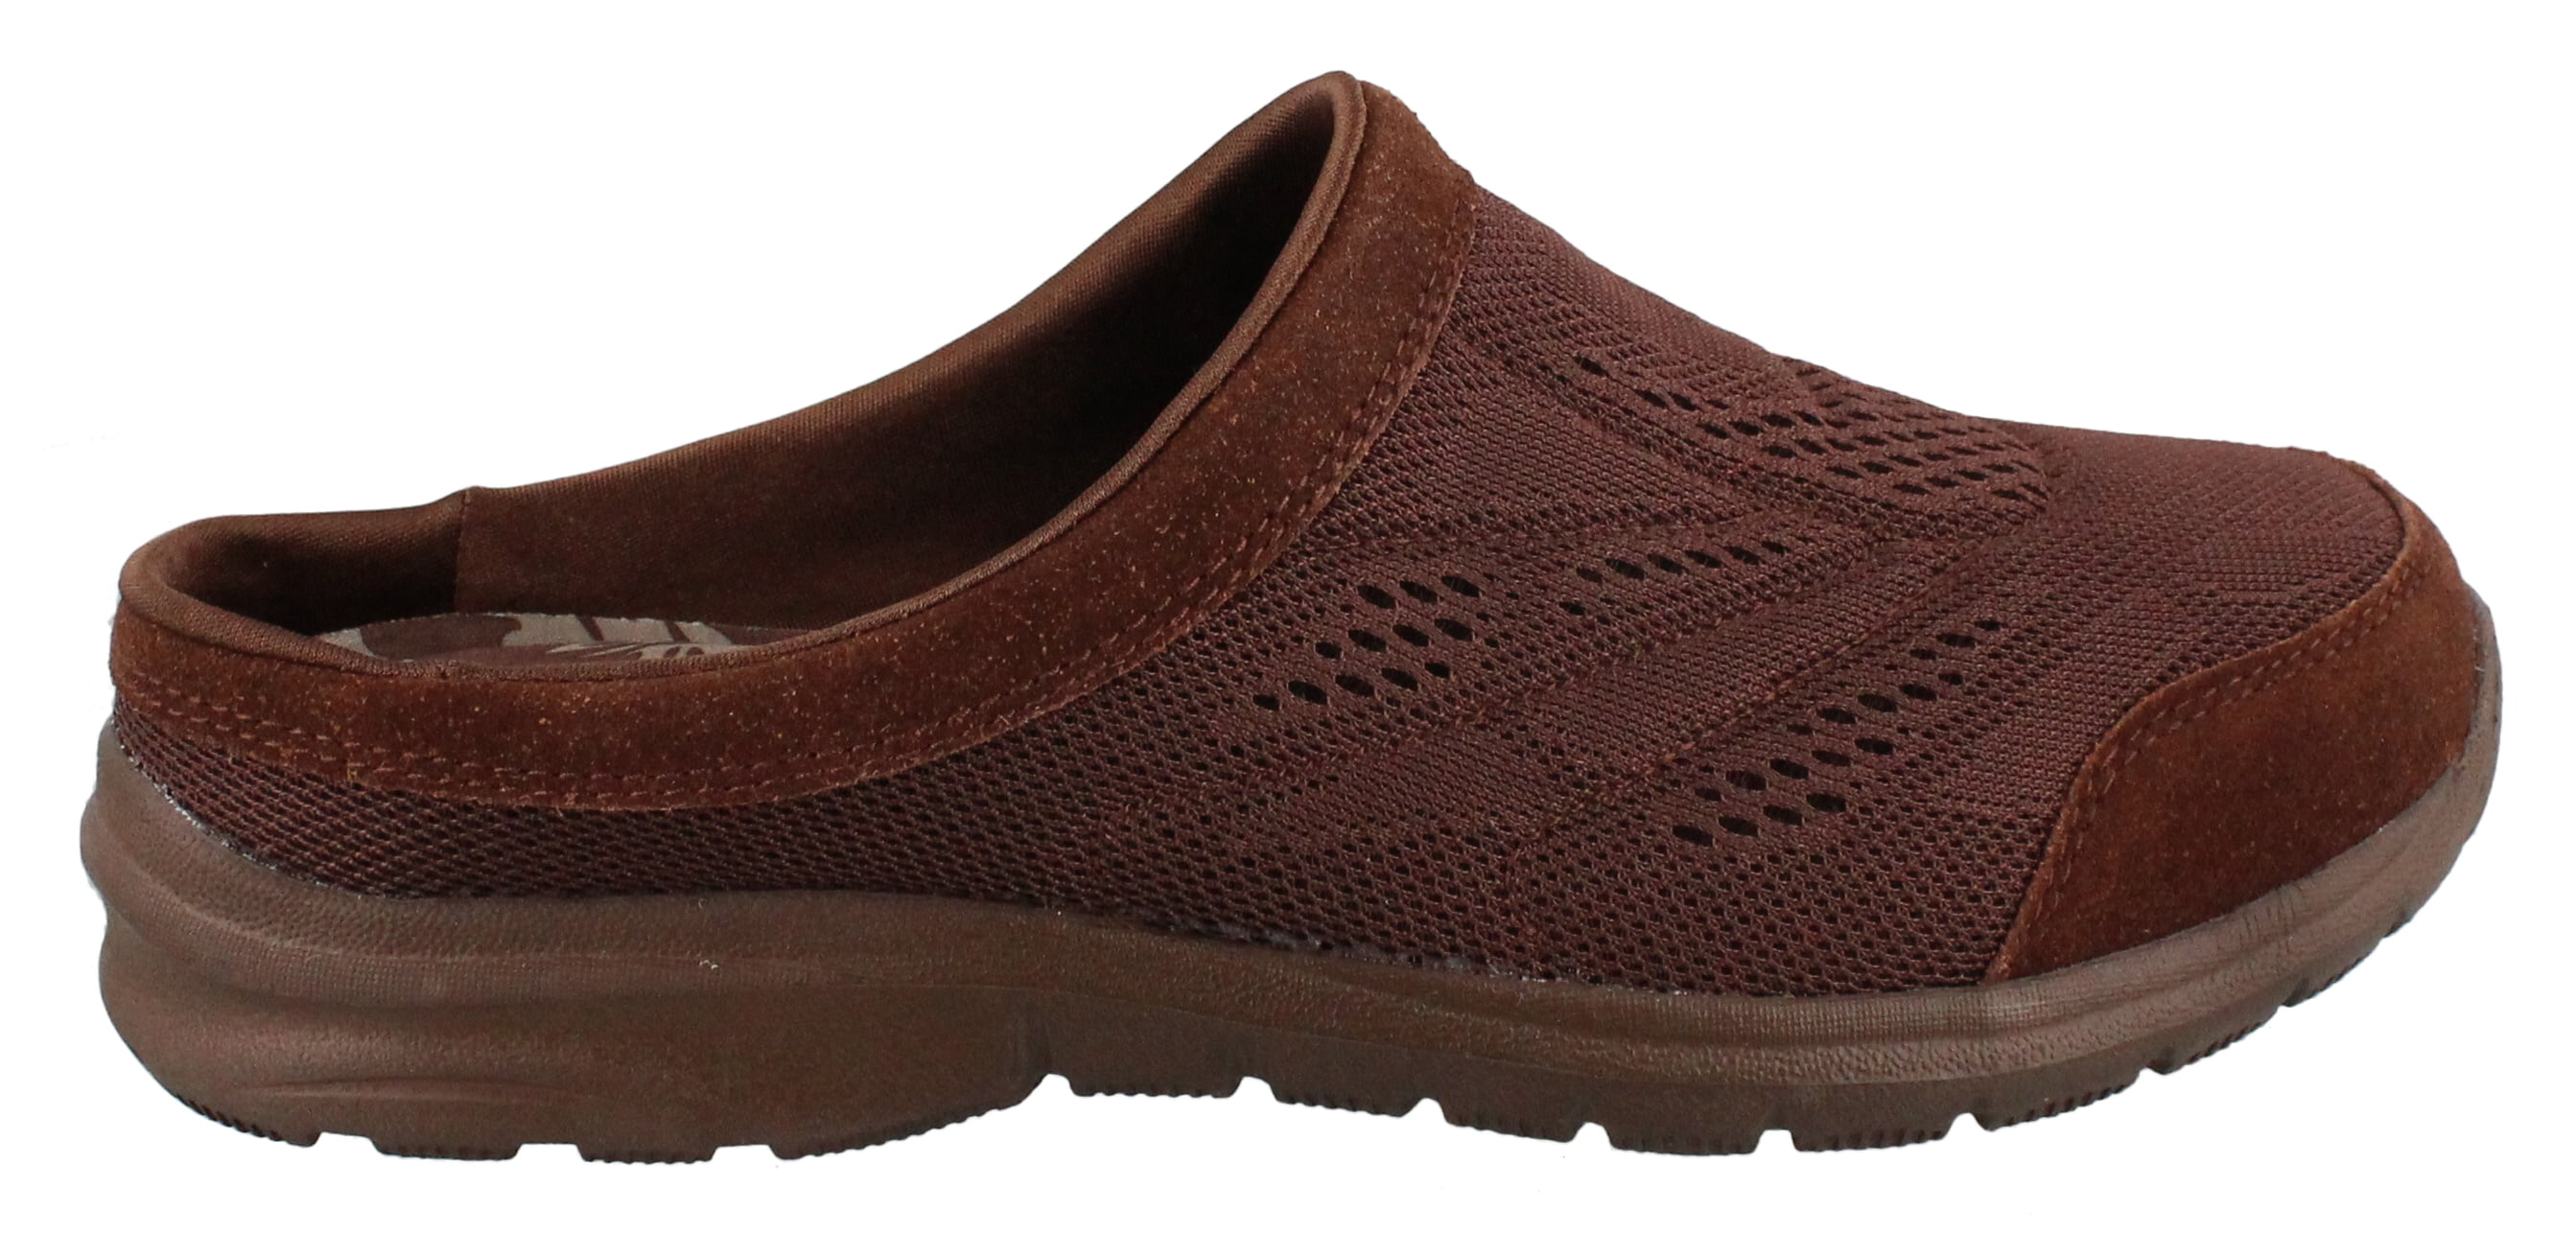 Women's Skechers, Relaxed Living Serenity Slip on Clog